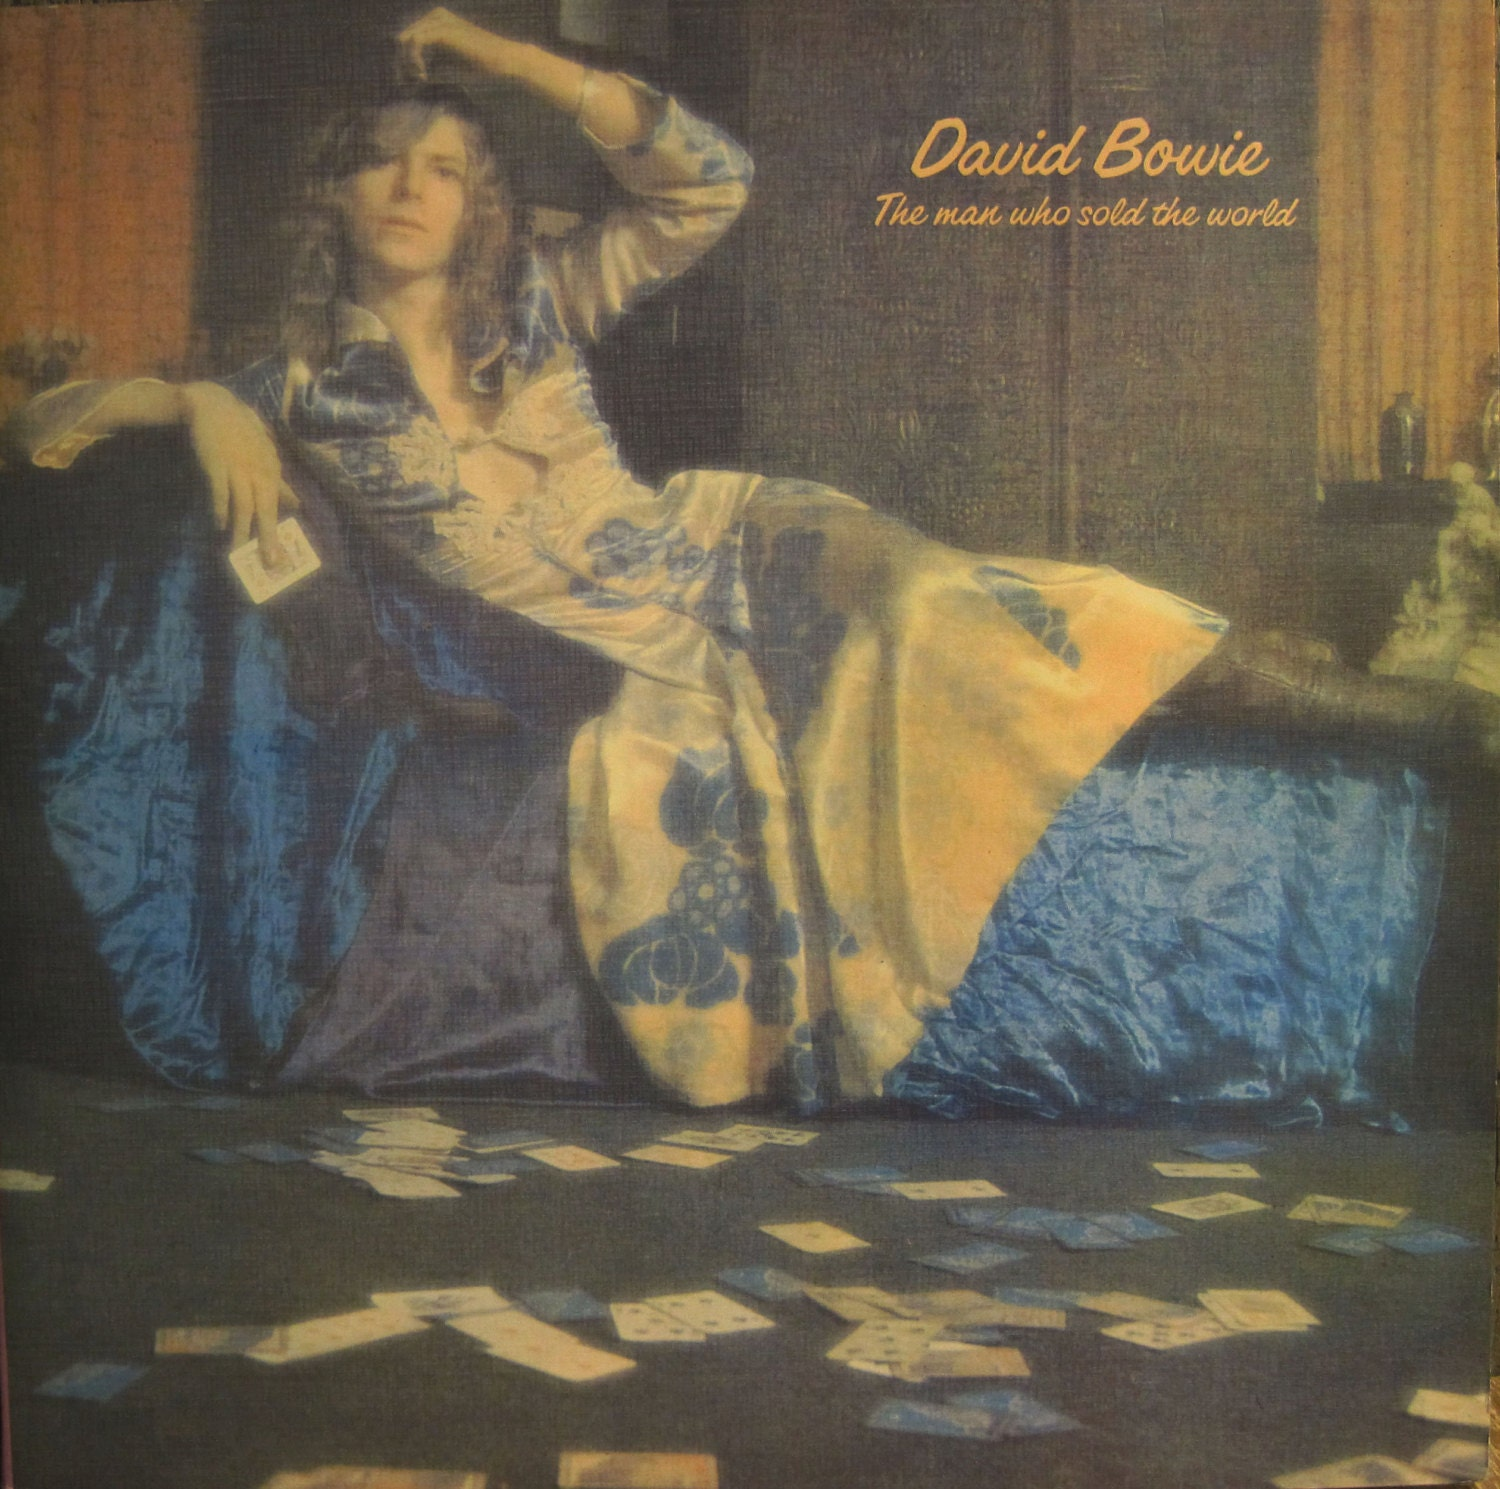 Rare '90 DAVID BOWIE The Man Who Sold the World Imported